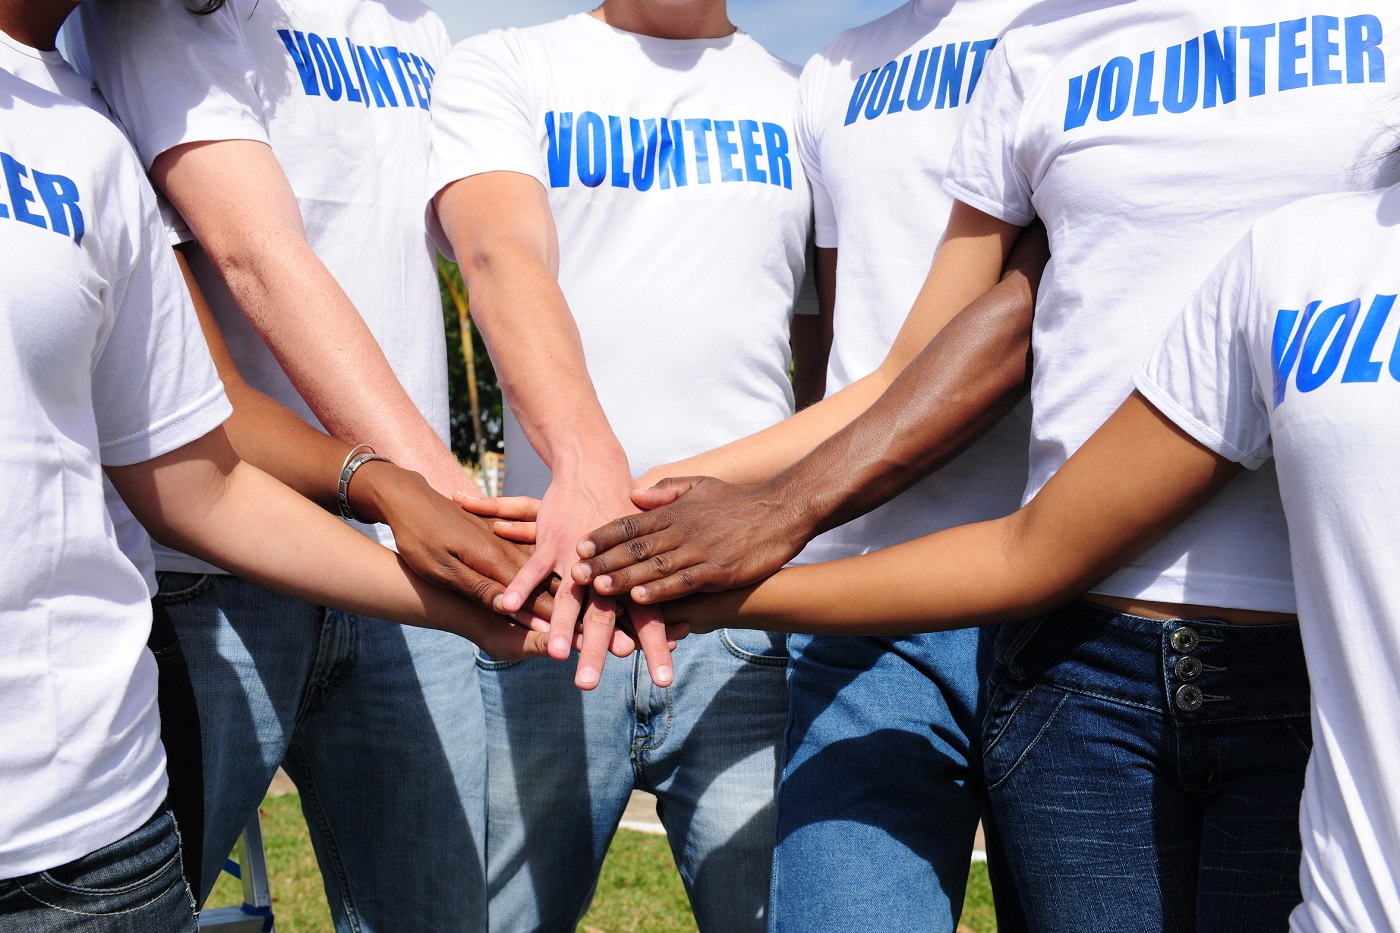 Go Volunteer group with hands together